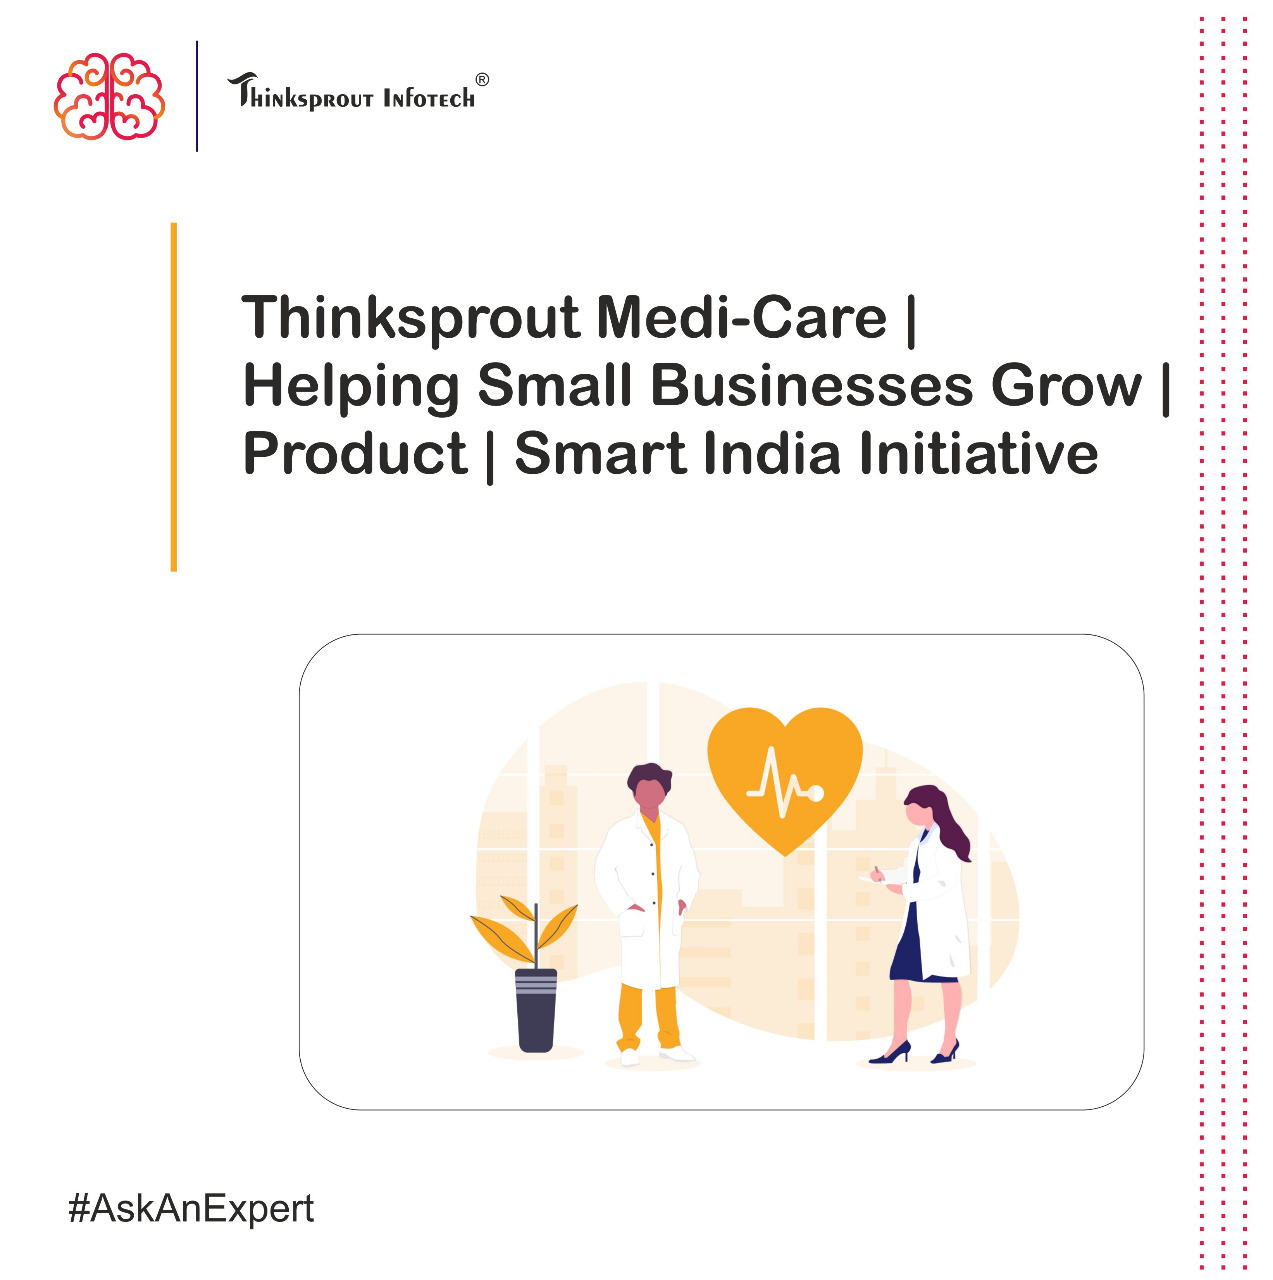 Thinksprout Medi-Care | Helping Businesses Grow